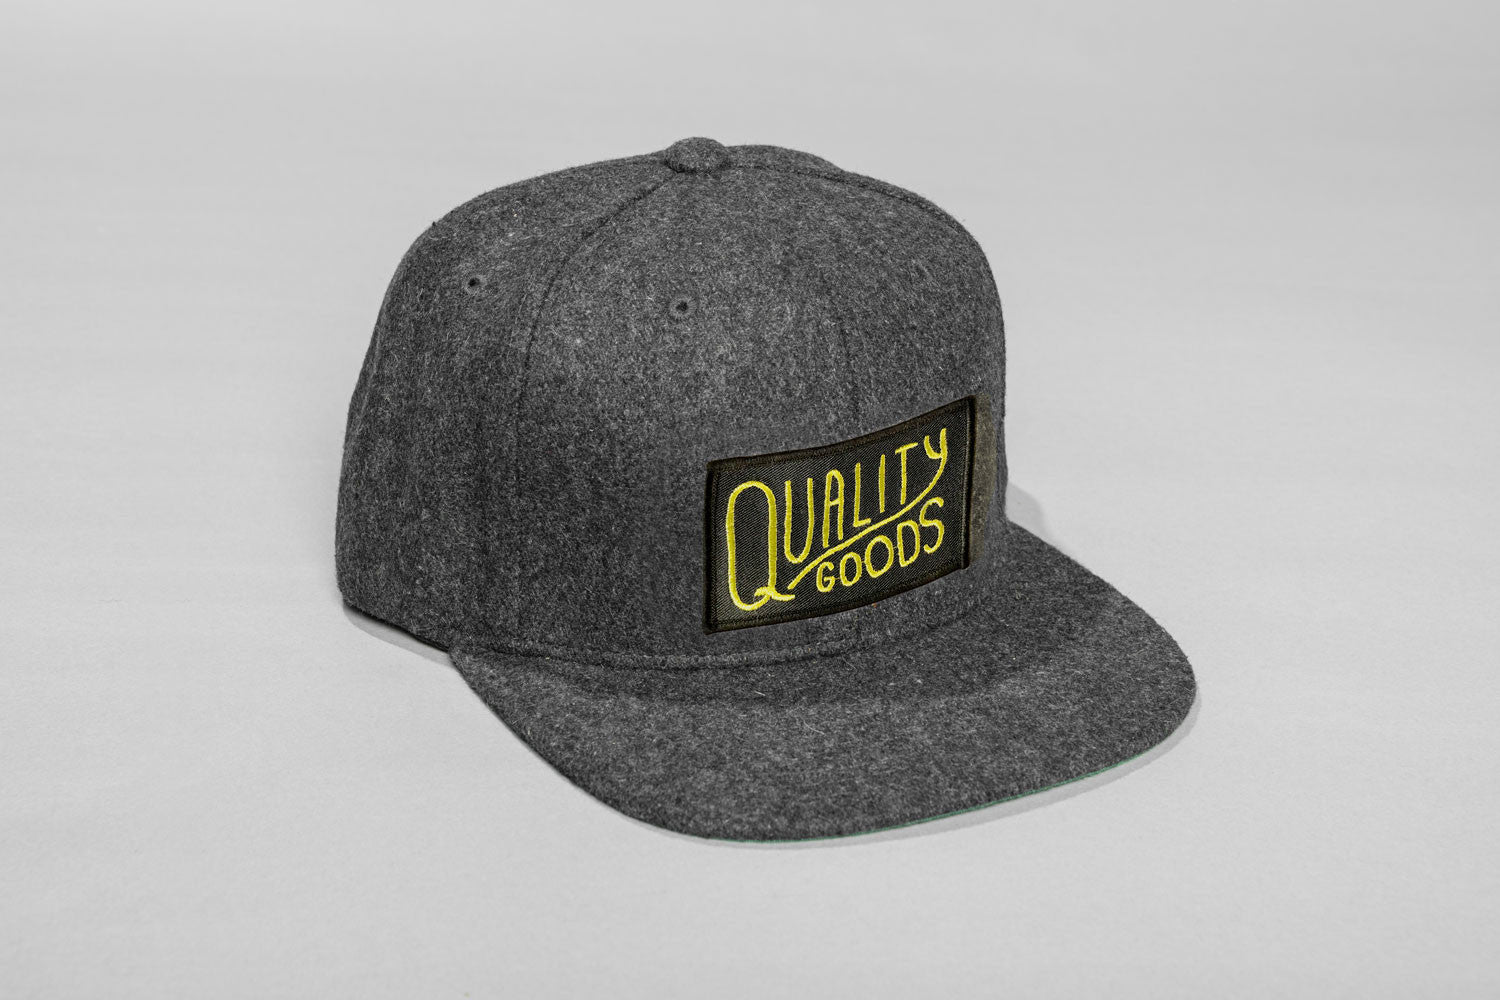 Quality Goods Wool hat